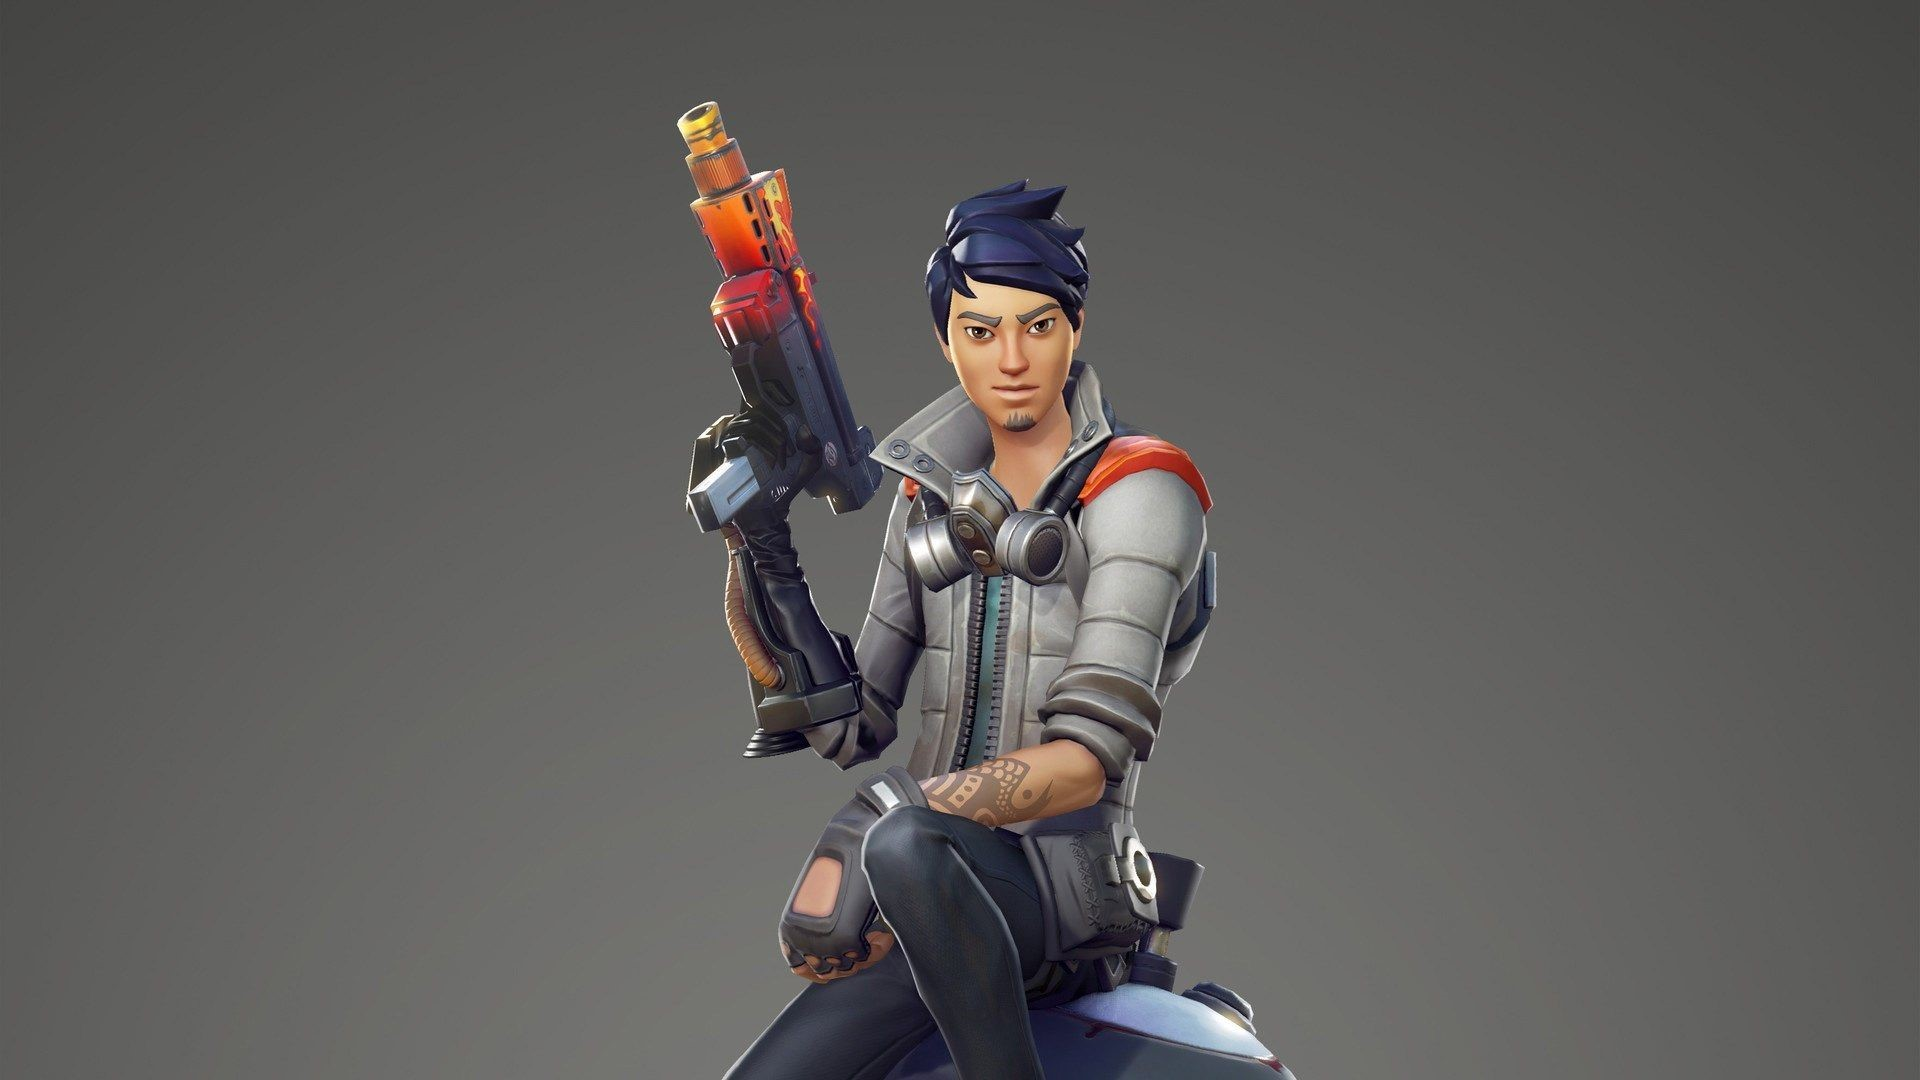 Fortnite Soldier Pics